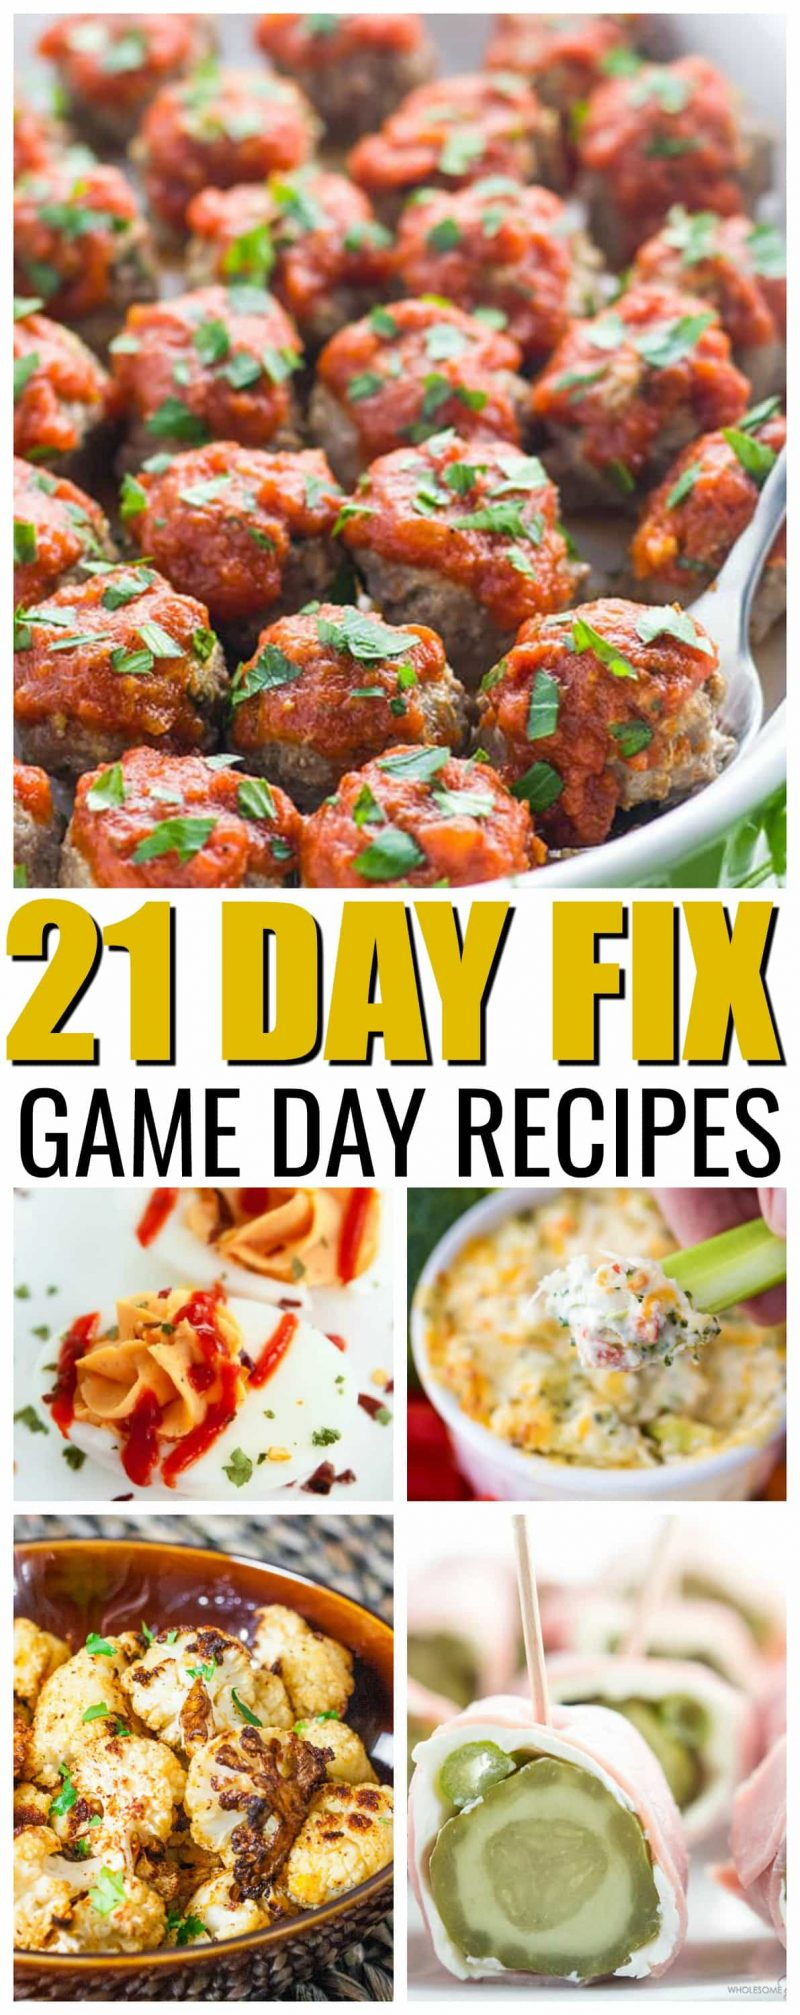 21 Day Fix Game Day Foods, Football friendly 21 day fix recipes